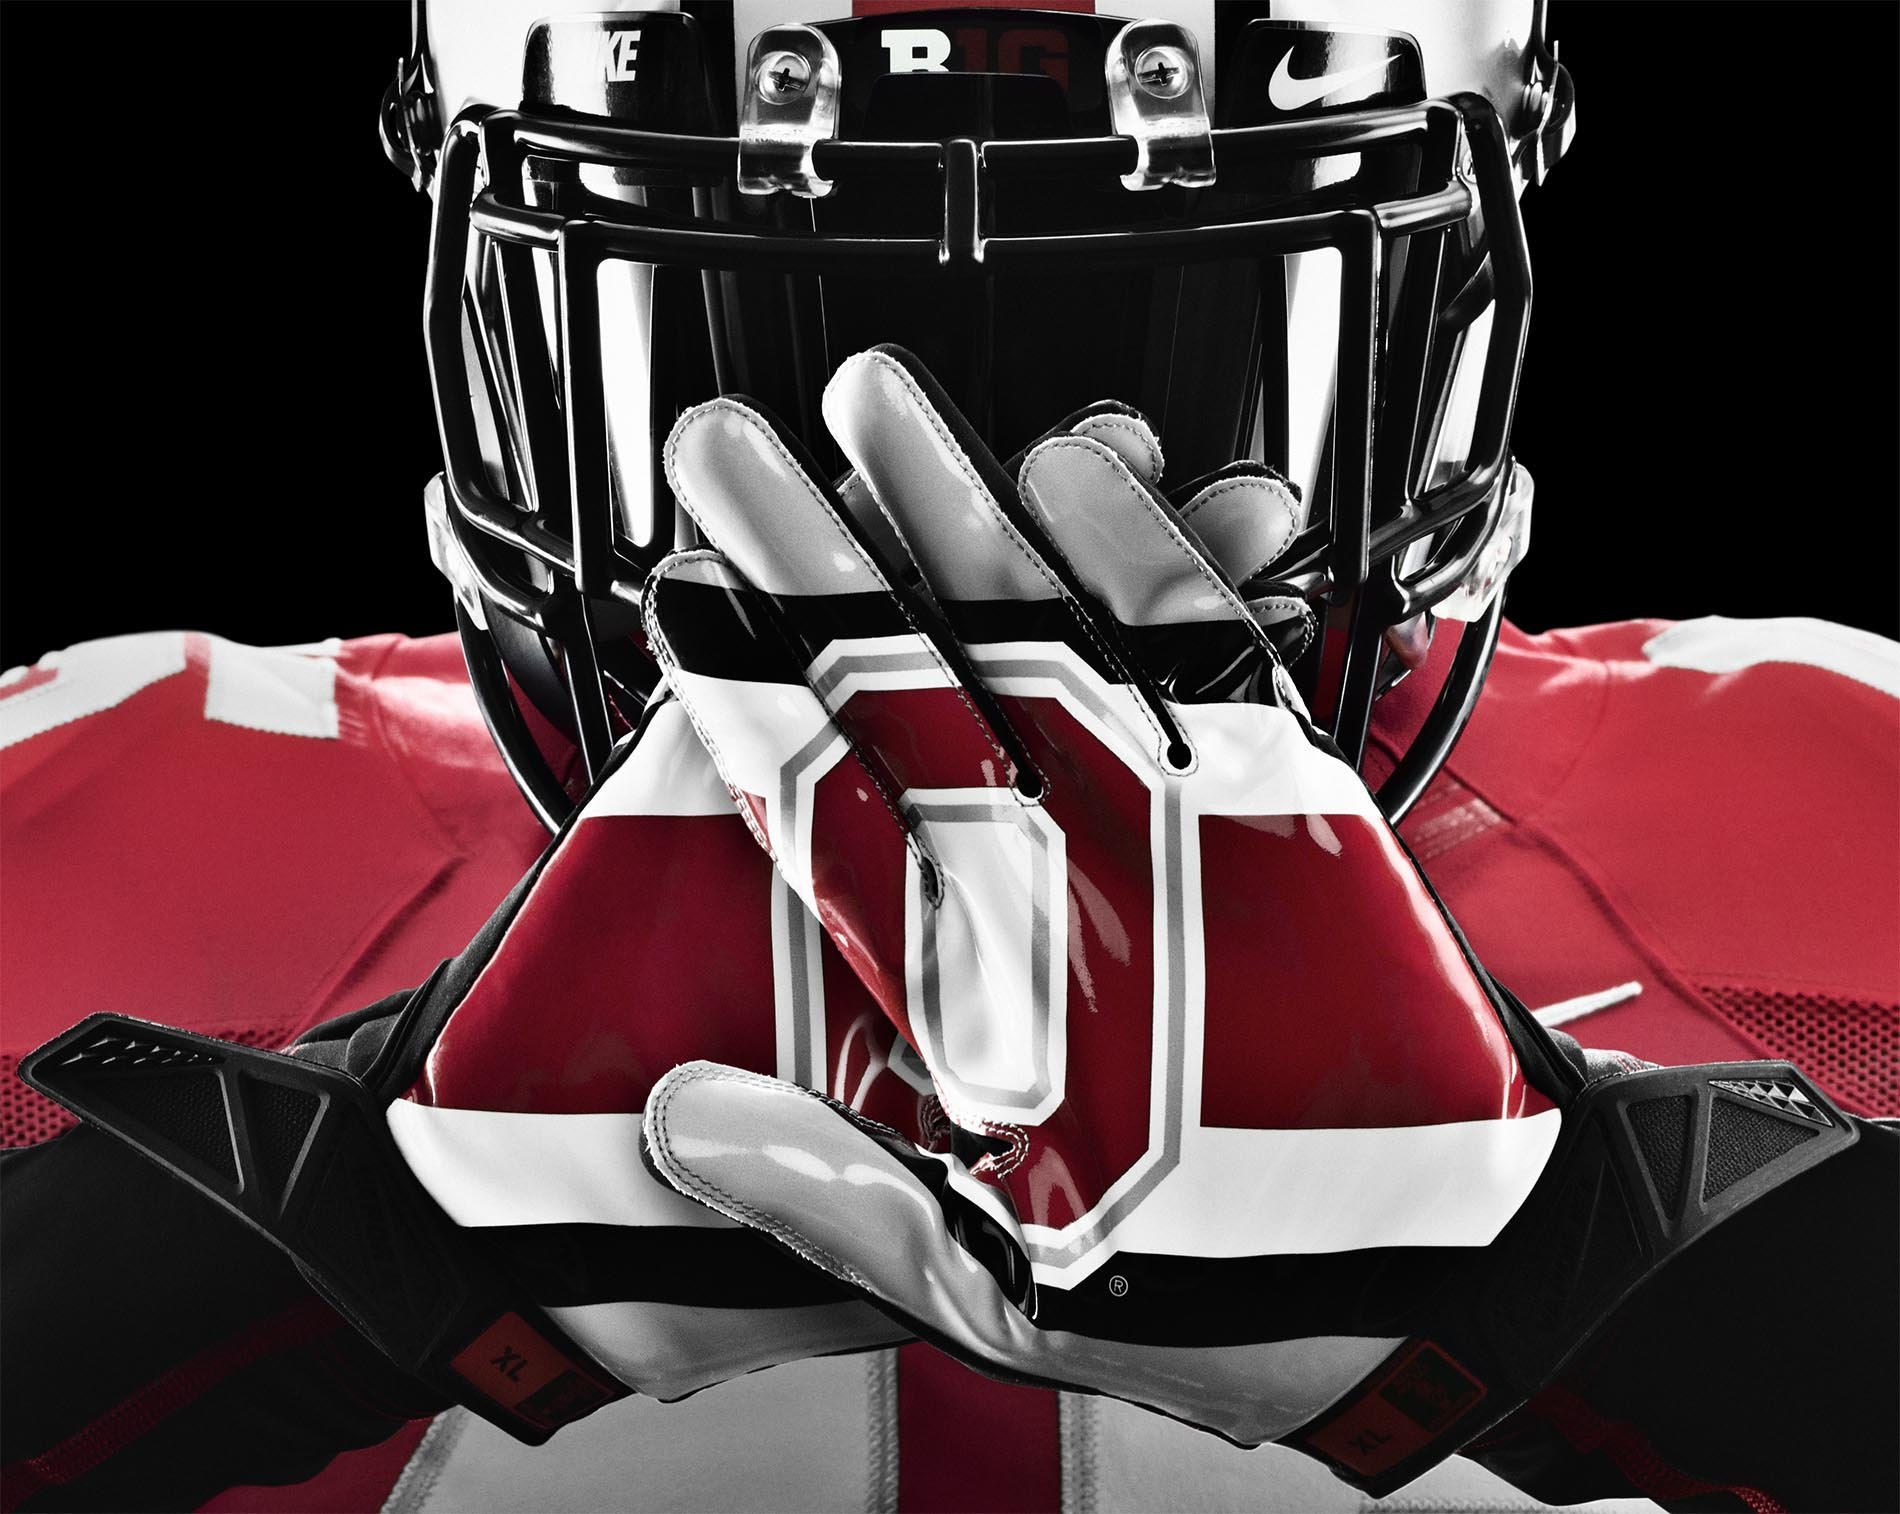 OHIO STATE BUCKEYES college football poster wallpaper background 1900x1514